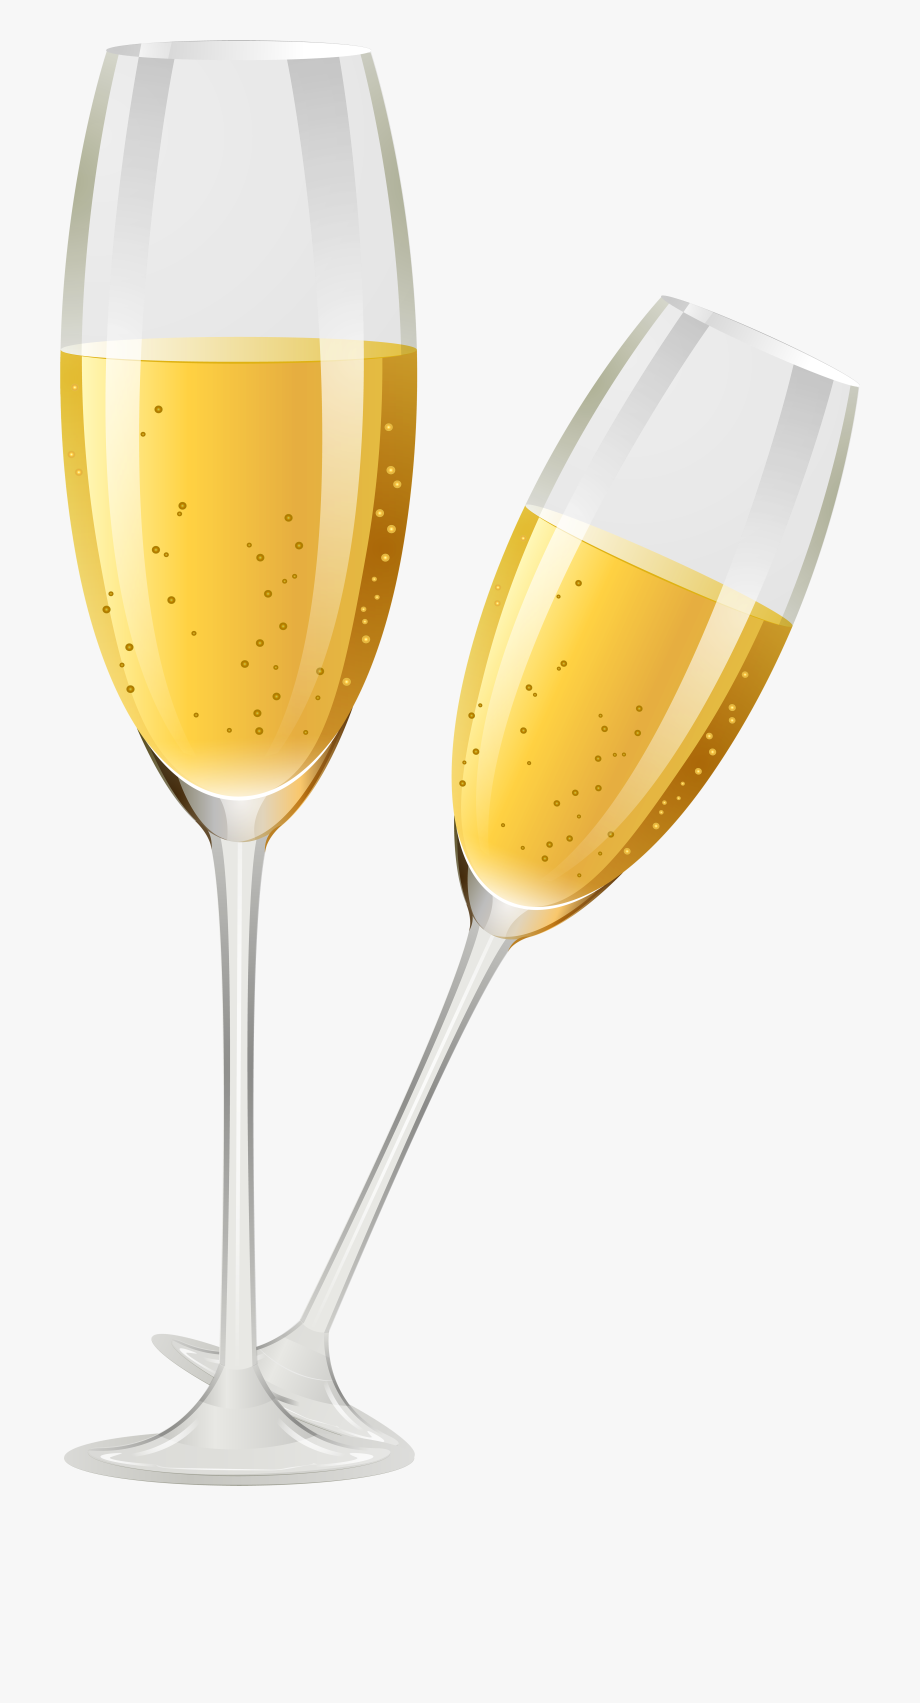 Gold champagne glass clipart black and white library Banner Black And White Gold Champagne Glass Clipart - Champagne ... black and white library